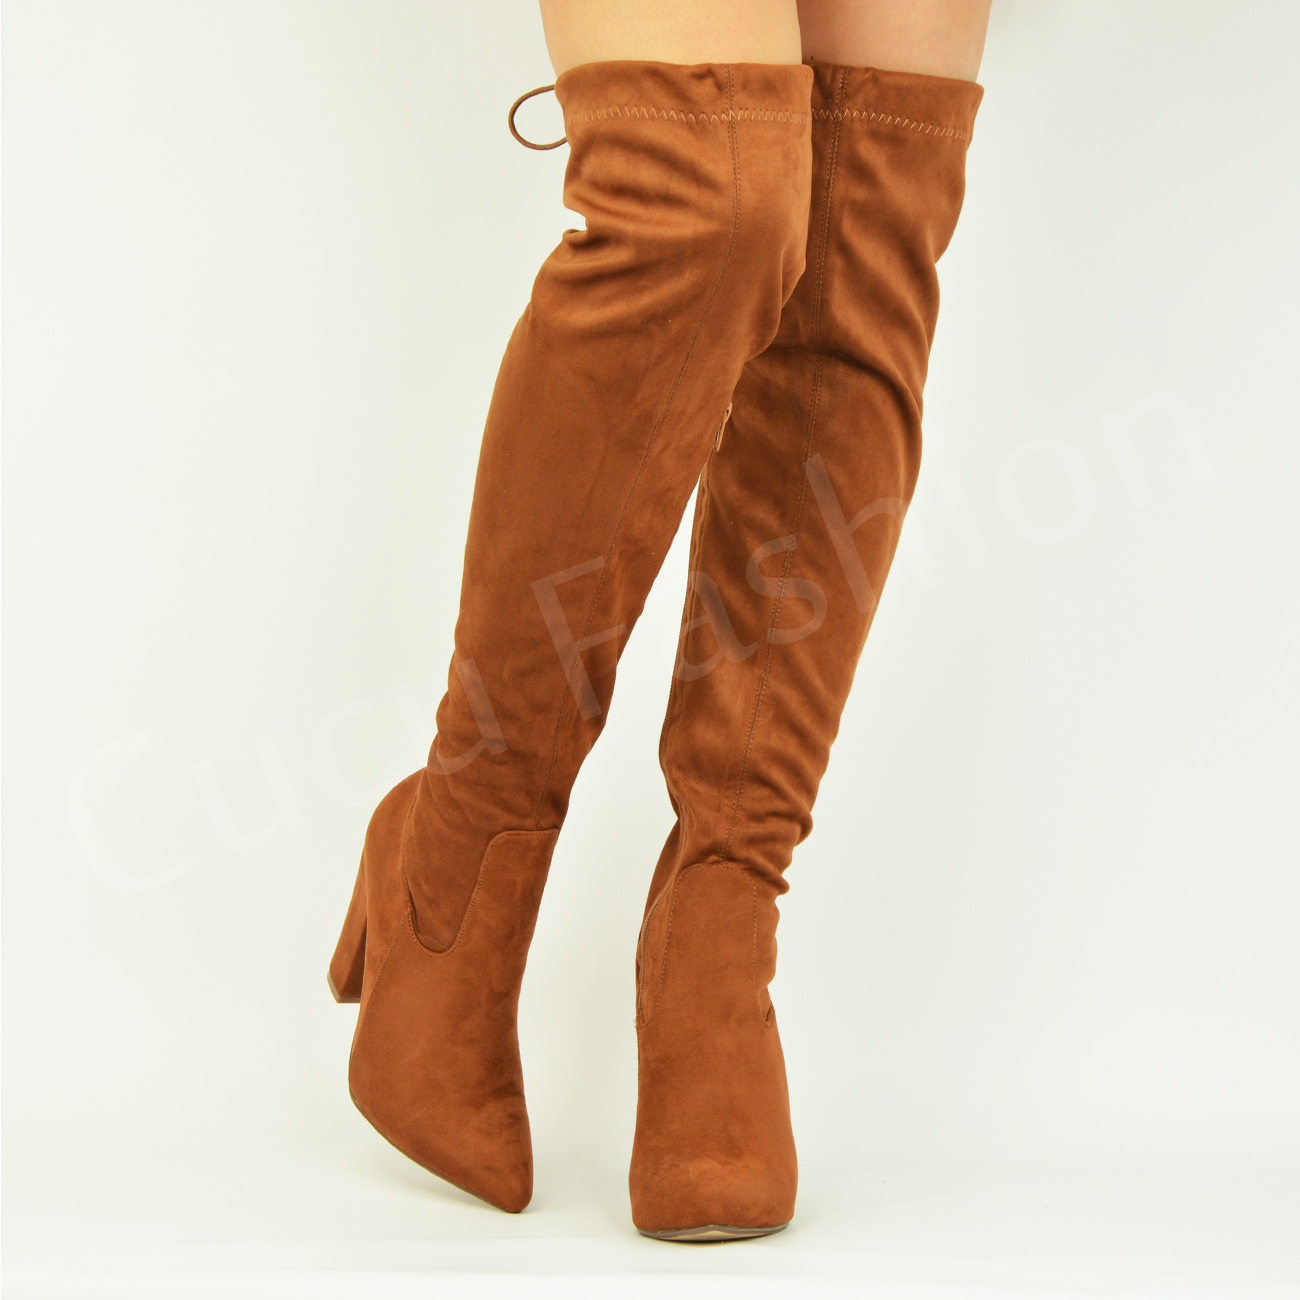 New-Womens-Ladies-Over-The-Knee-Side-Zip-Boots-High-Block-Heel-Shoes-Size-Uk-3-8